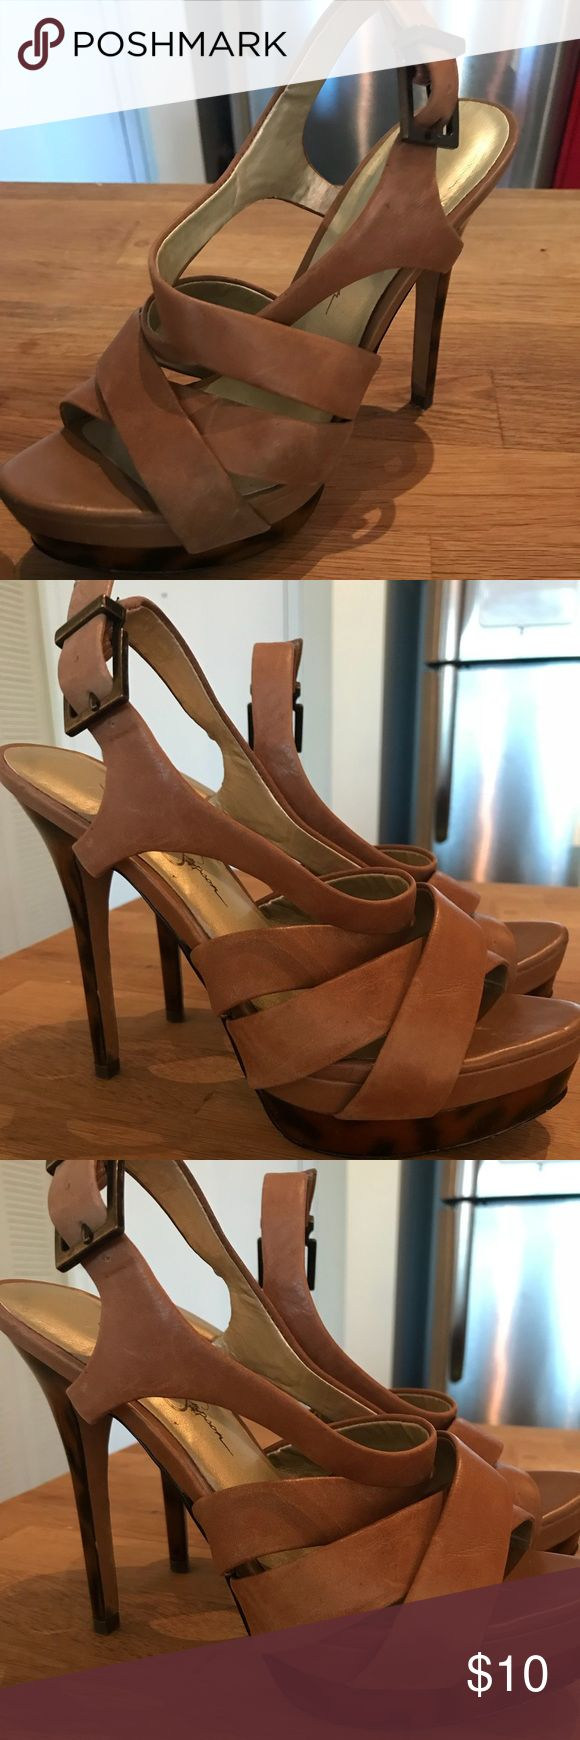 Size 6.5 Camel Jessica Simpson strappy heels Camel strappy heels with a faux tortoise shell platform. Heel is 4 inches high. Love these heels so they're a little worn in! Just means no blisters for you! Jessica Simpson Shoes Heels